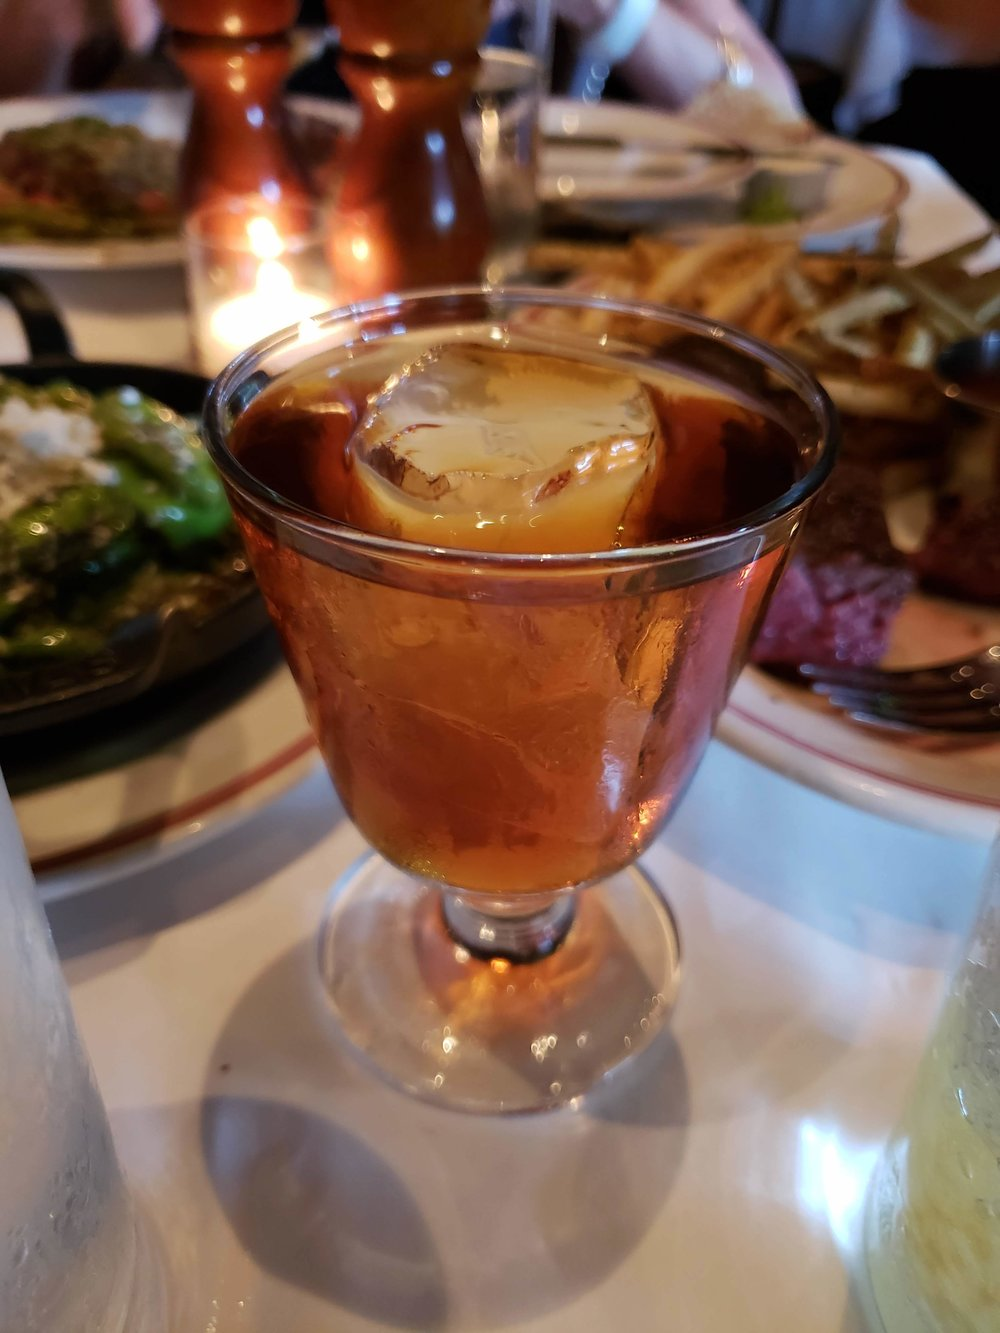 The Clouston, a cynar-based negroni variant with grapefruit oil